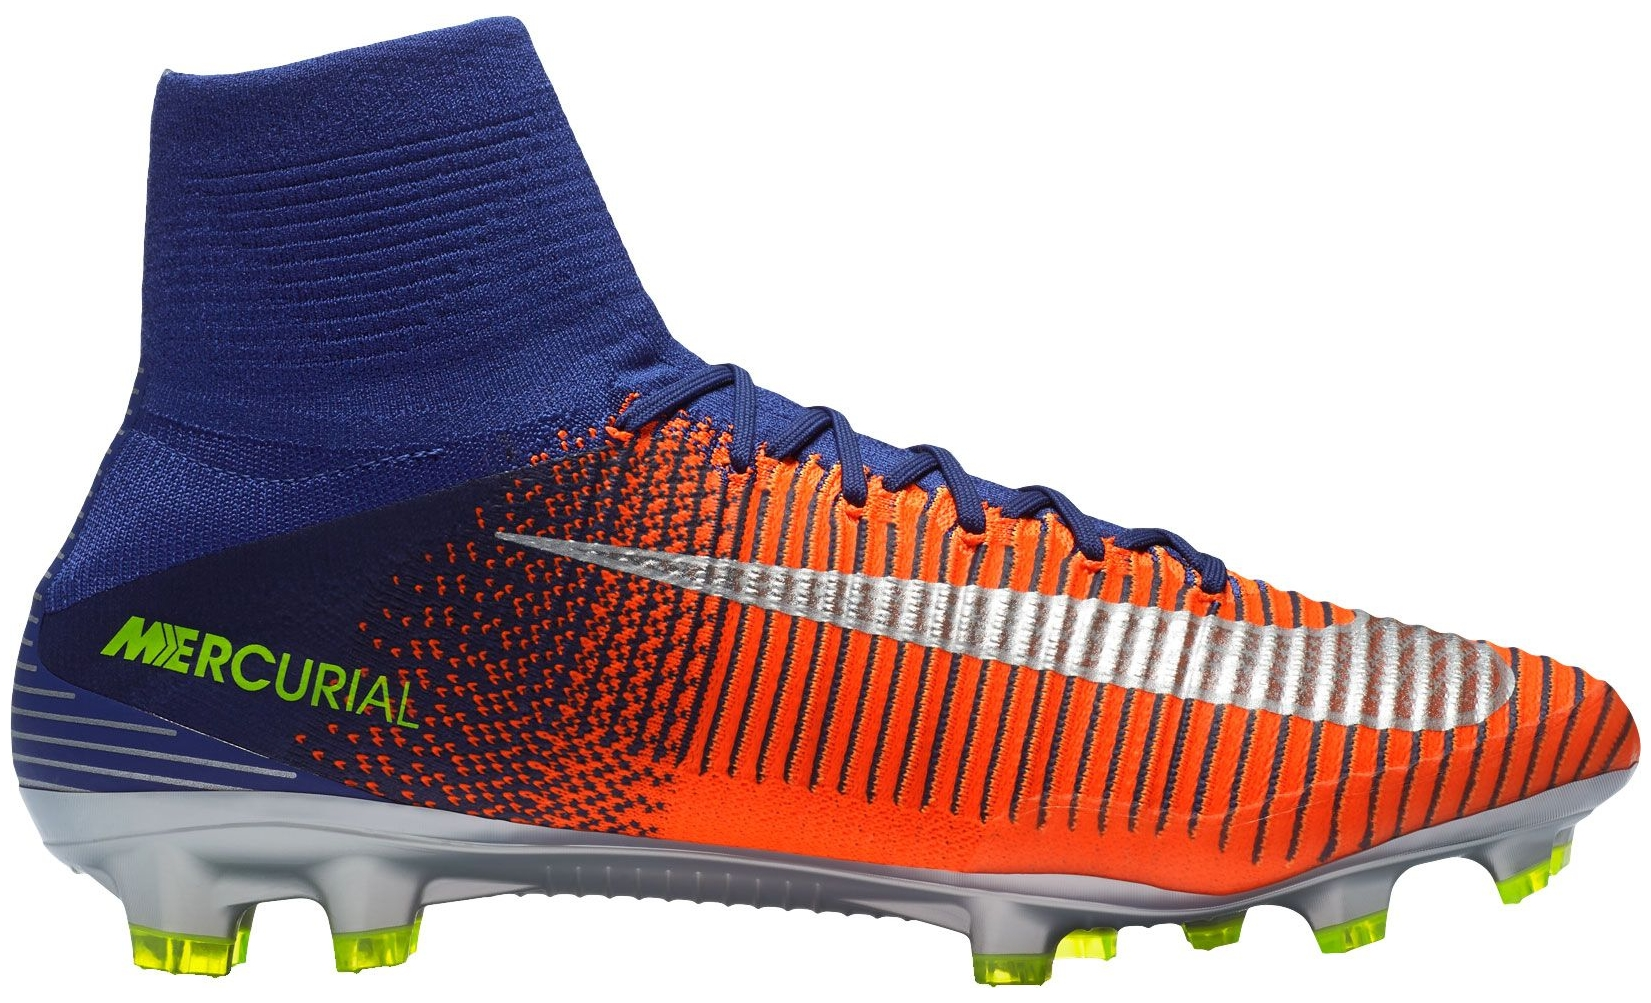 Mercurial Superfly II FG Soccer Cleats